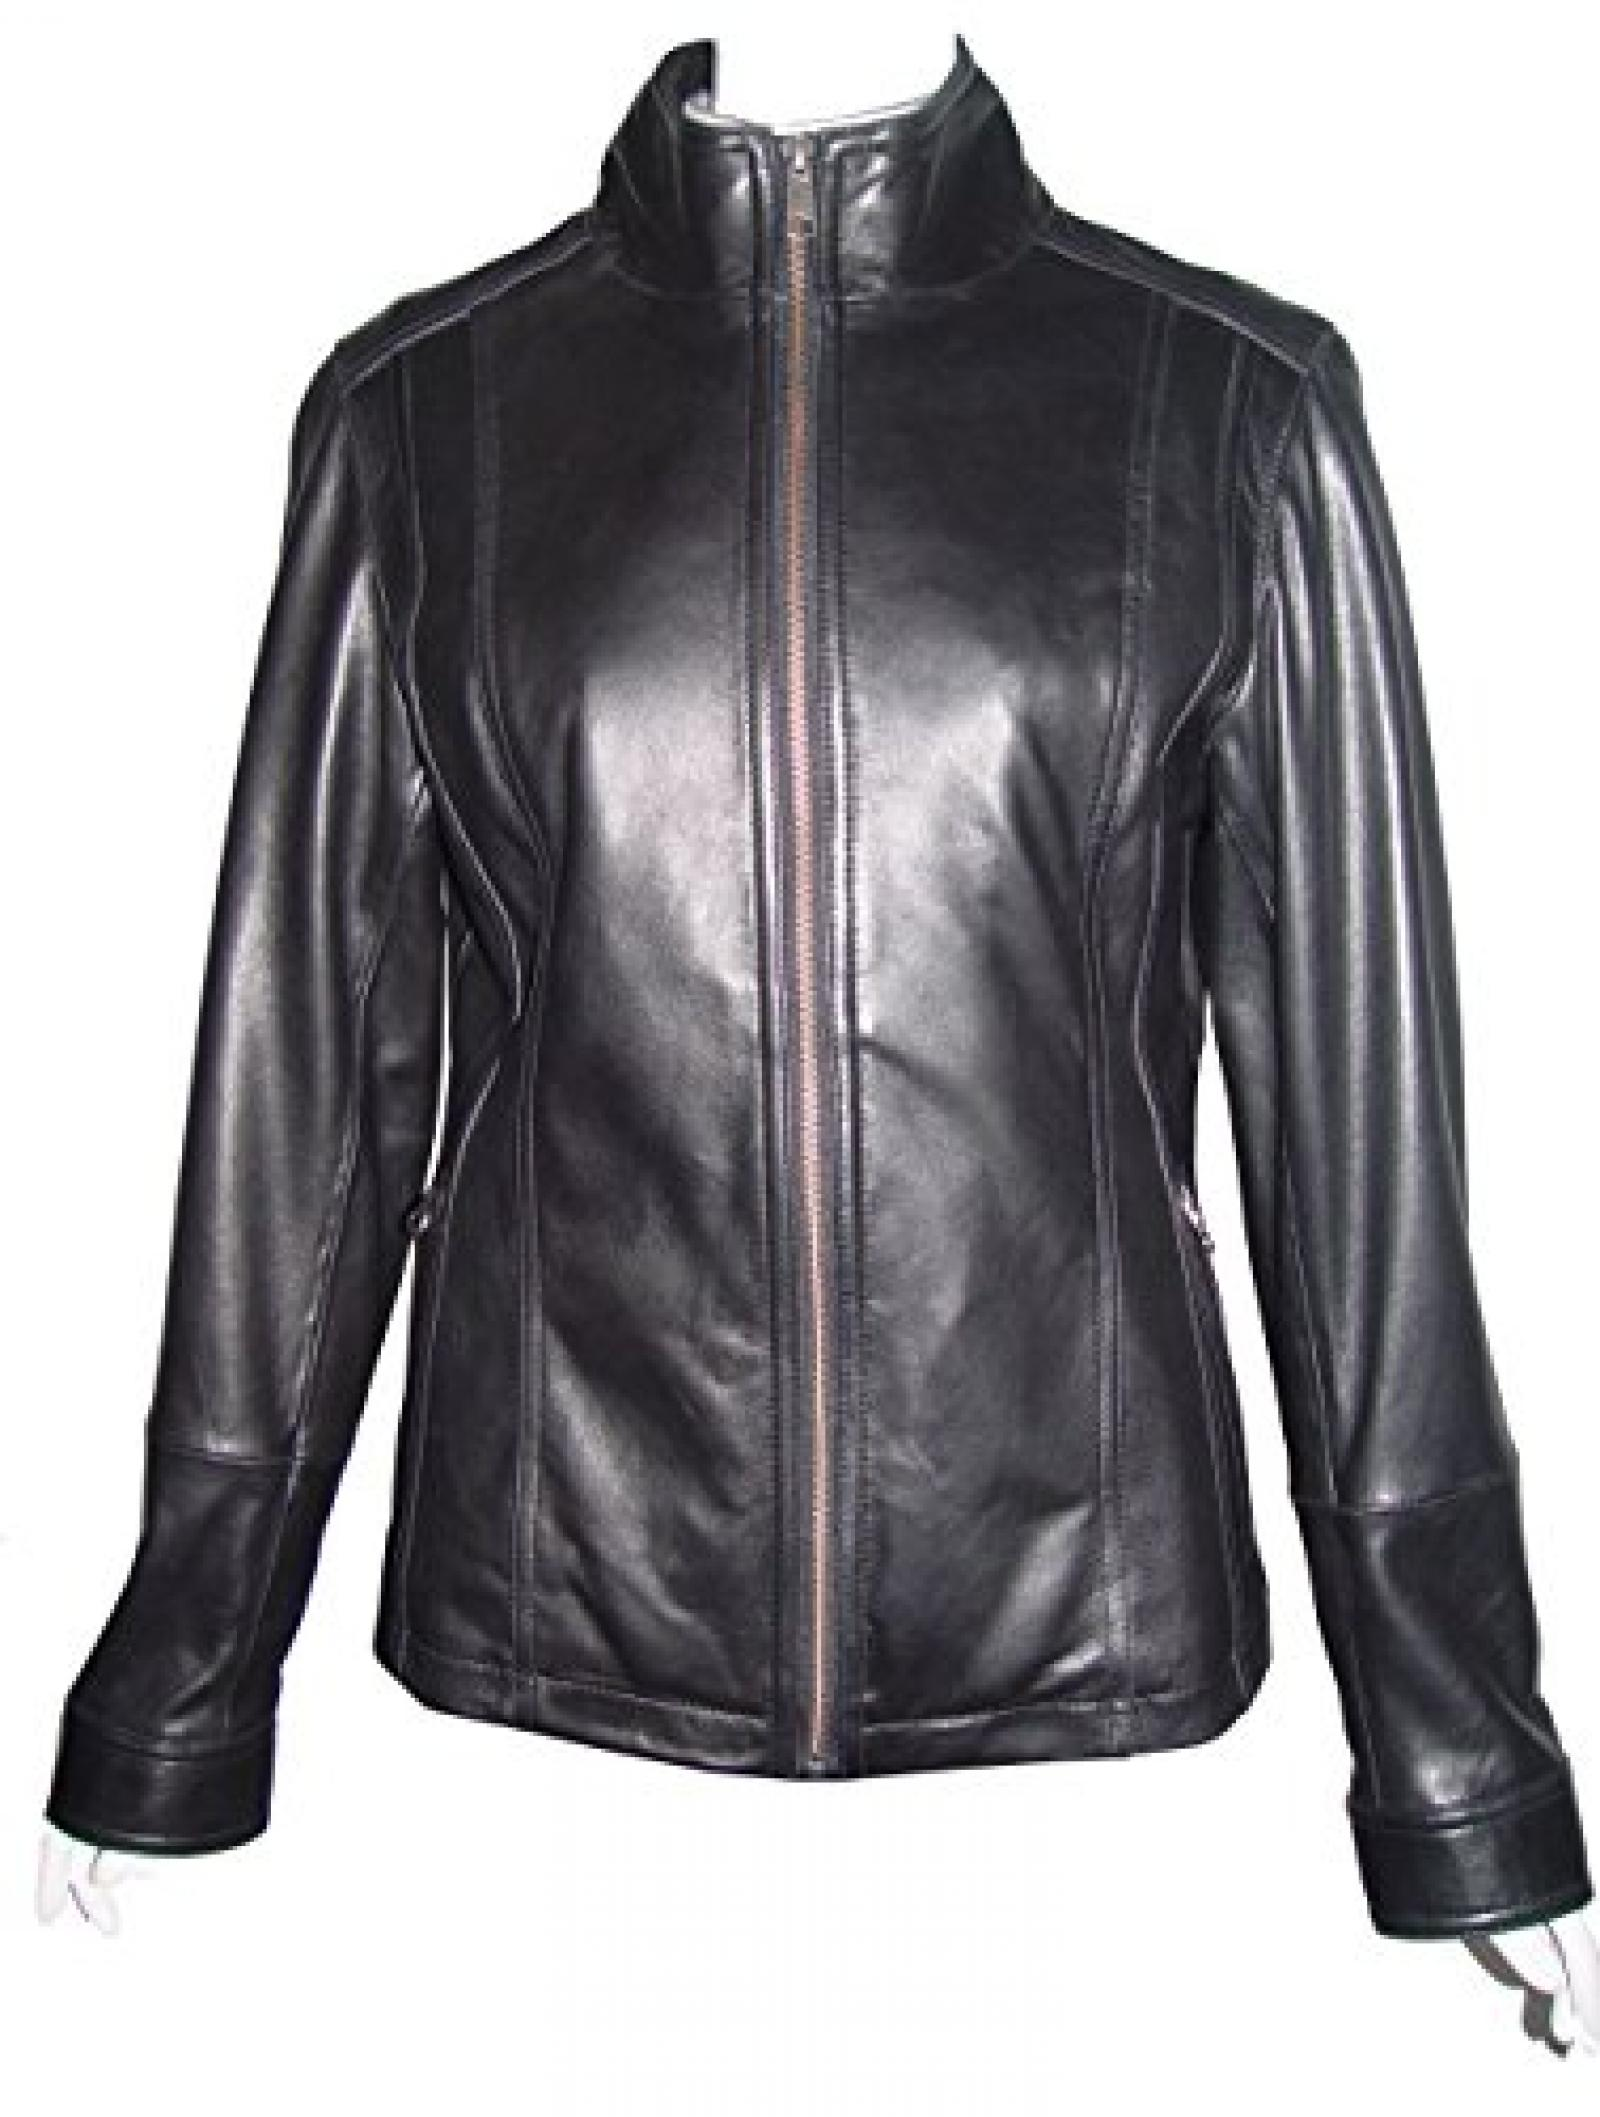 Nettailor Women 4202 Soft Leather New Casual Jacket Zip Front Closure Zip Pocket